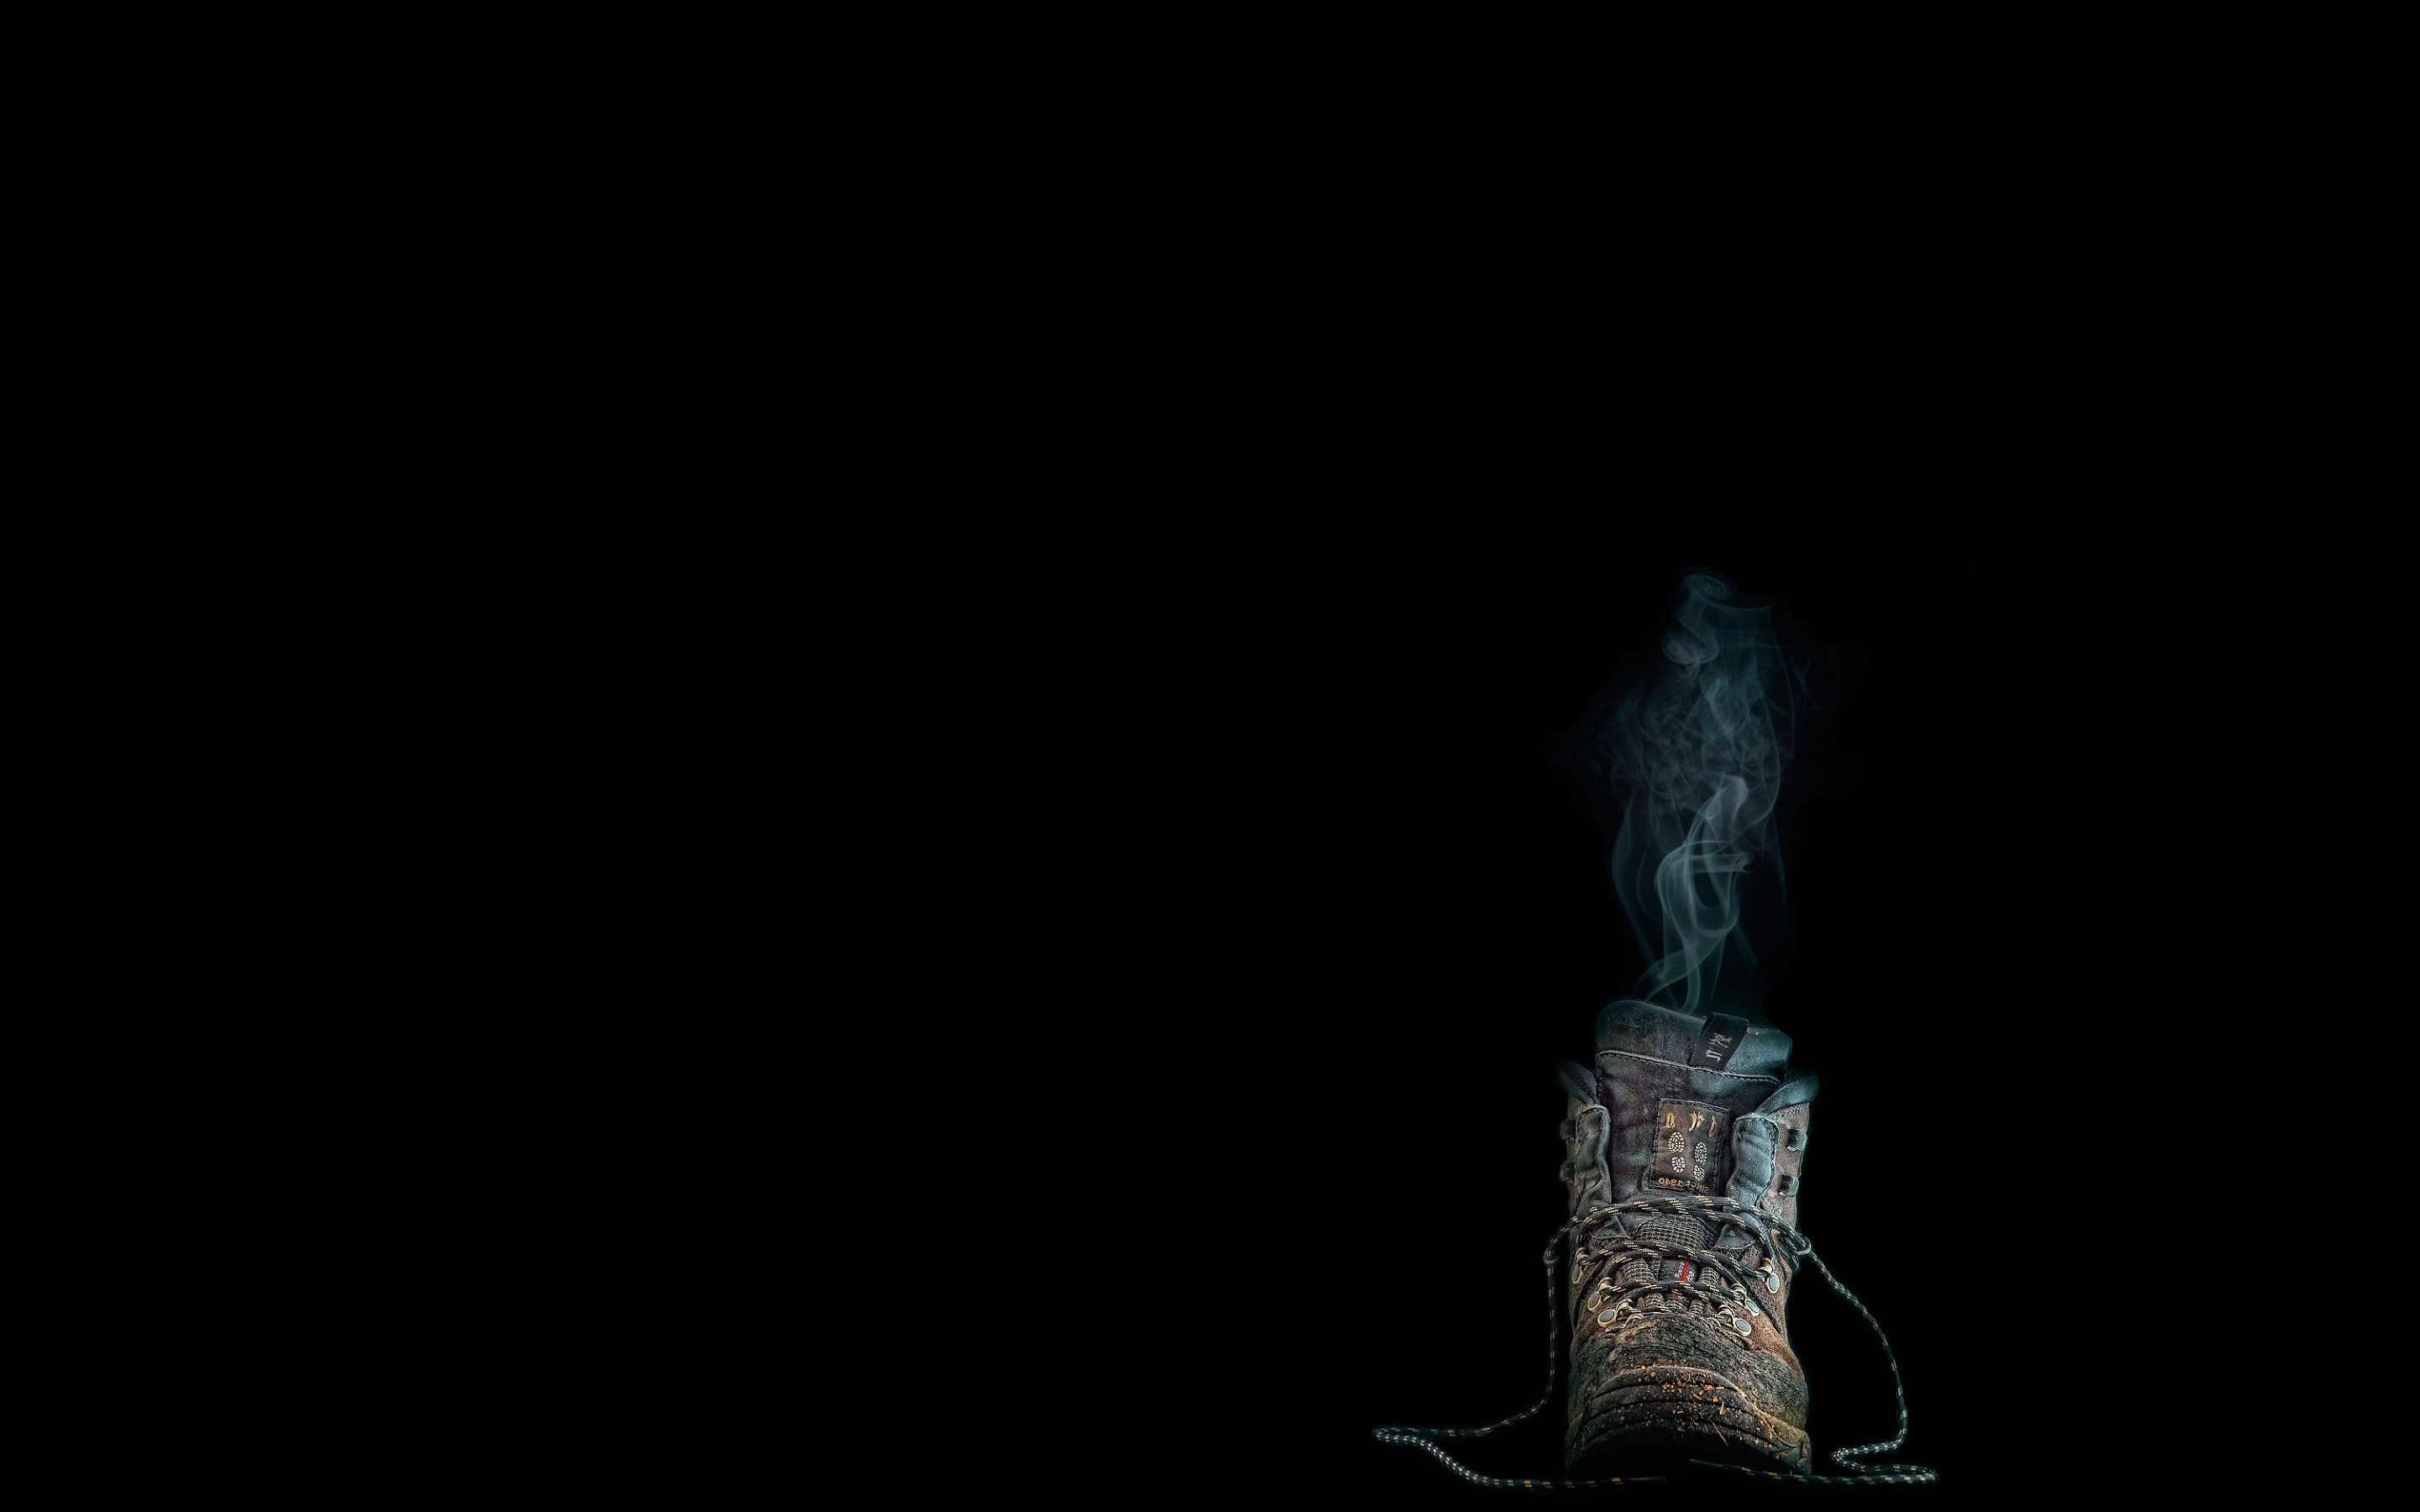 2880x1800 minimalism, Black Background, Boots, Smoke, Dirt, Humor, Lace Wallpapers HD  / Desktop and Mobile Backgrounds